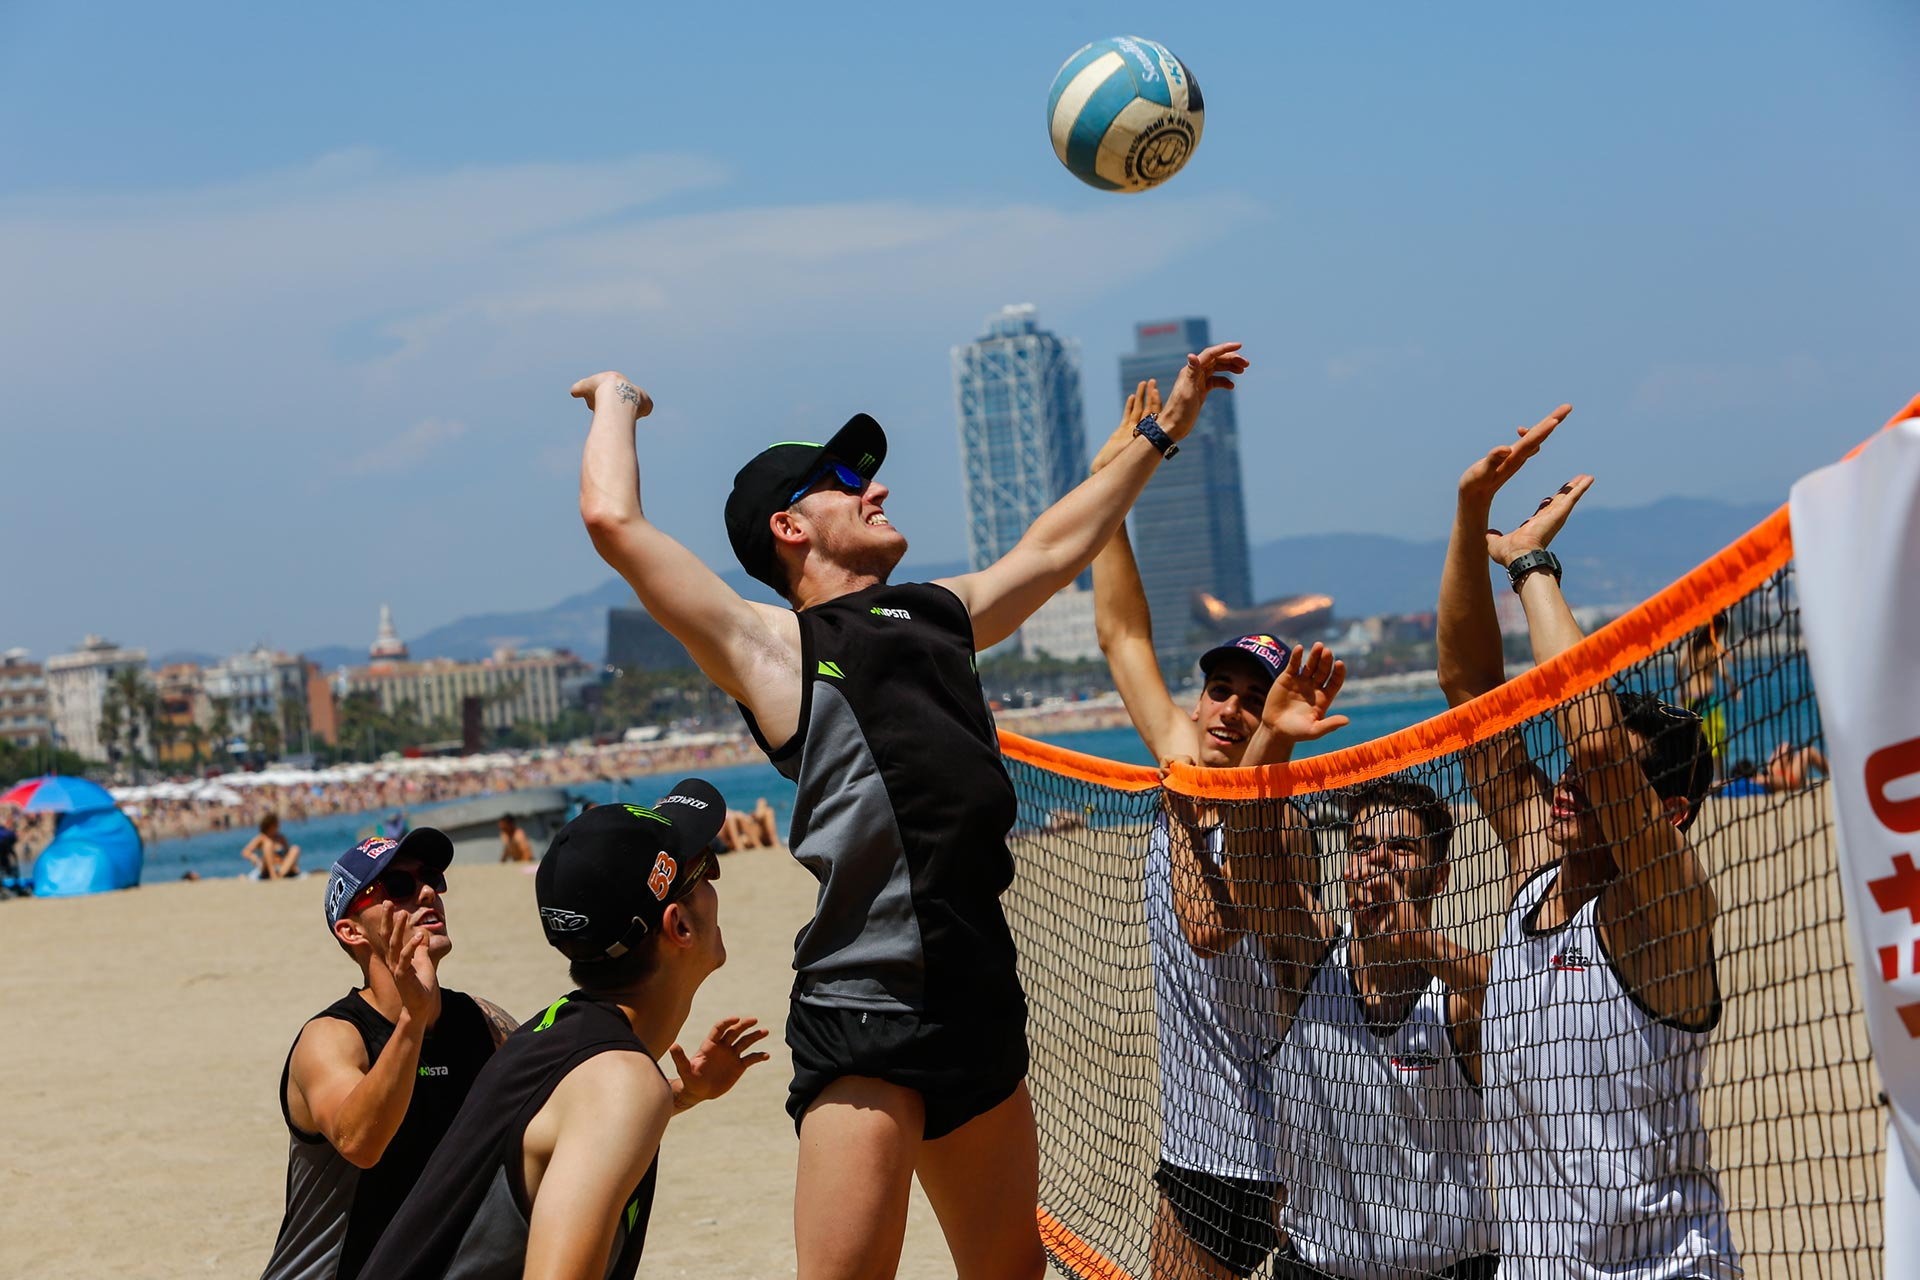 A group of six World Championship riders warmed up for the Gran Premi Monster Energy de Catalunya on Wednesday with a spot of beach volleyball in the beautiful city of Barcelona.